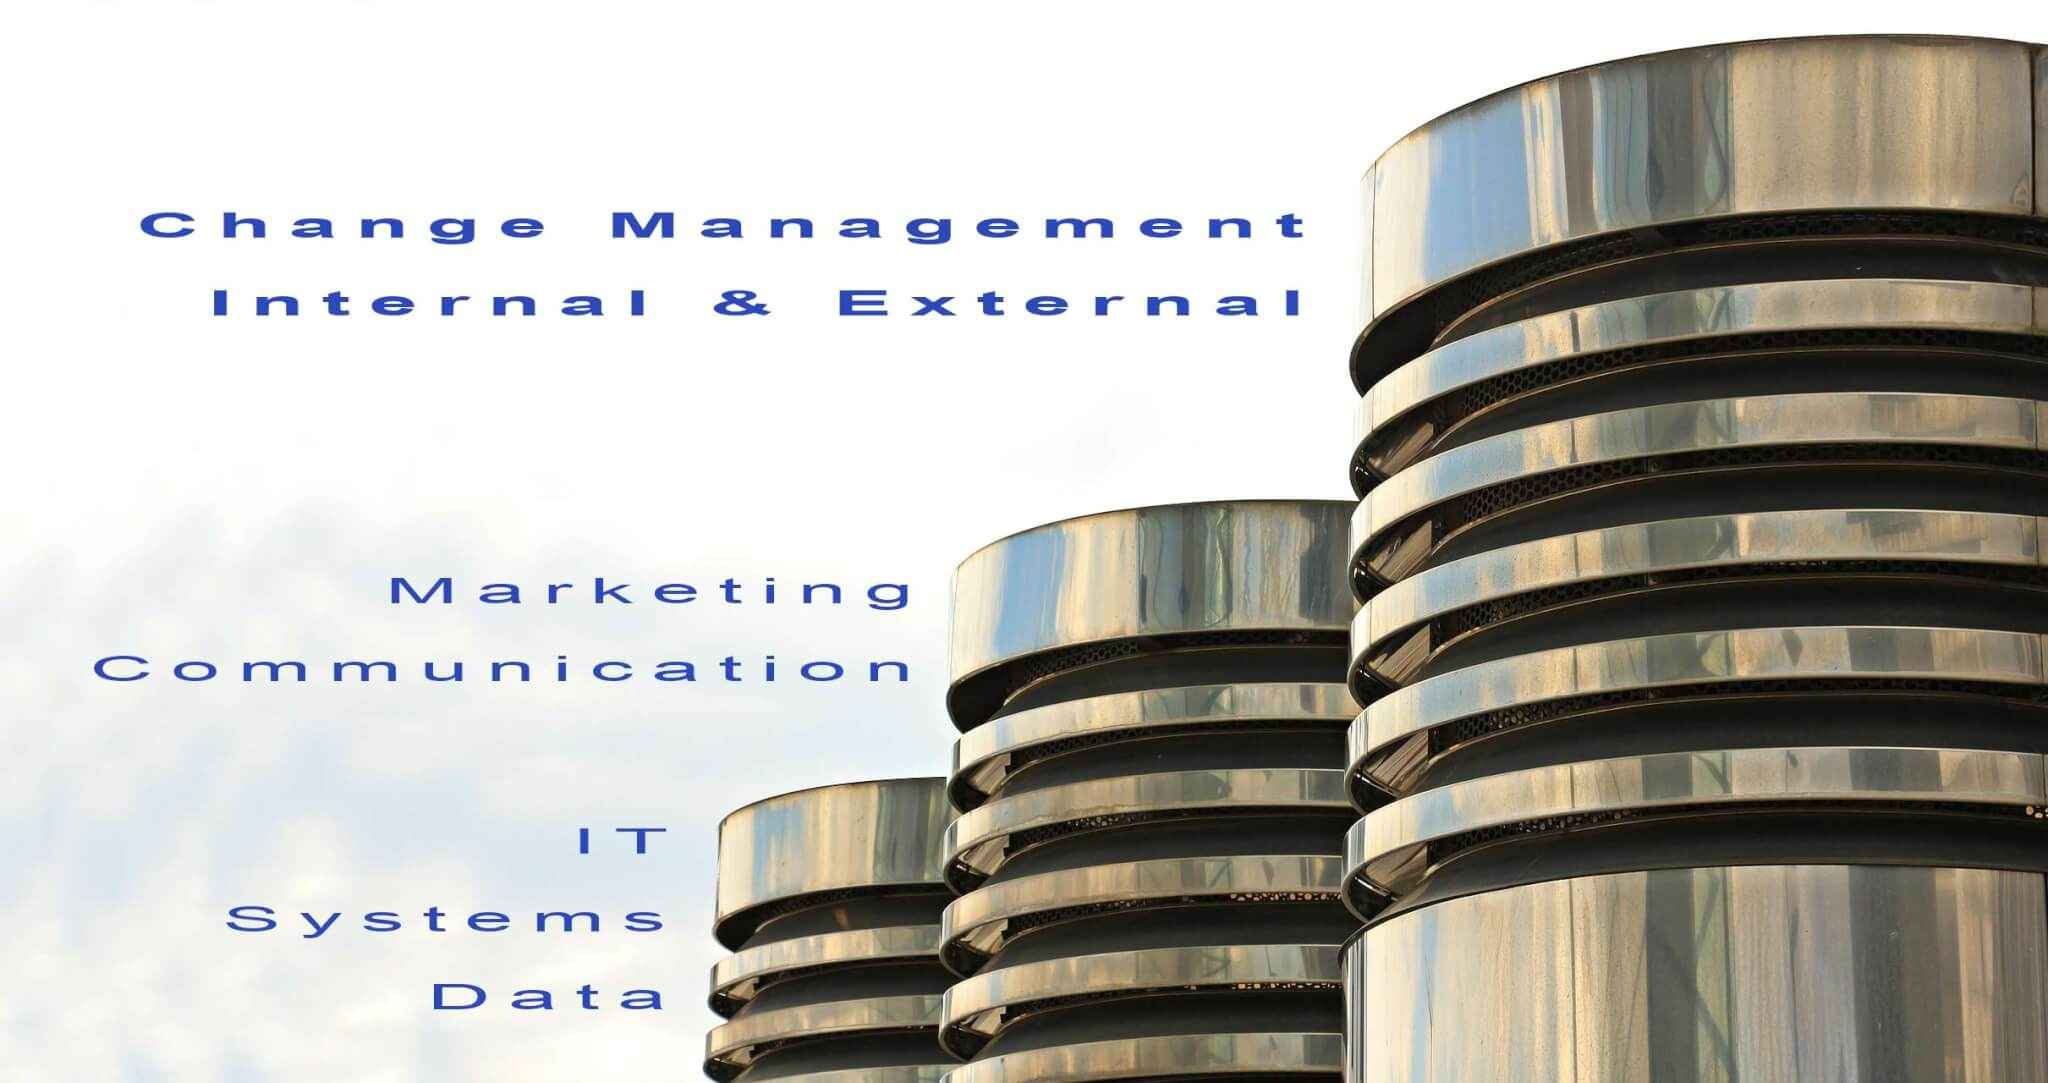 - Start a Digital Transformation Project: Change Management: There a 3 pillars. You will find much about Marketing and Communication within this blog. Also there is a strong attention on IT, systems and data. In this blog post now I would like to focus on the third pillar... Change Management. This is, maybe, the most important pillar.